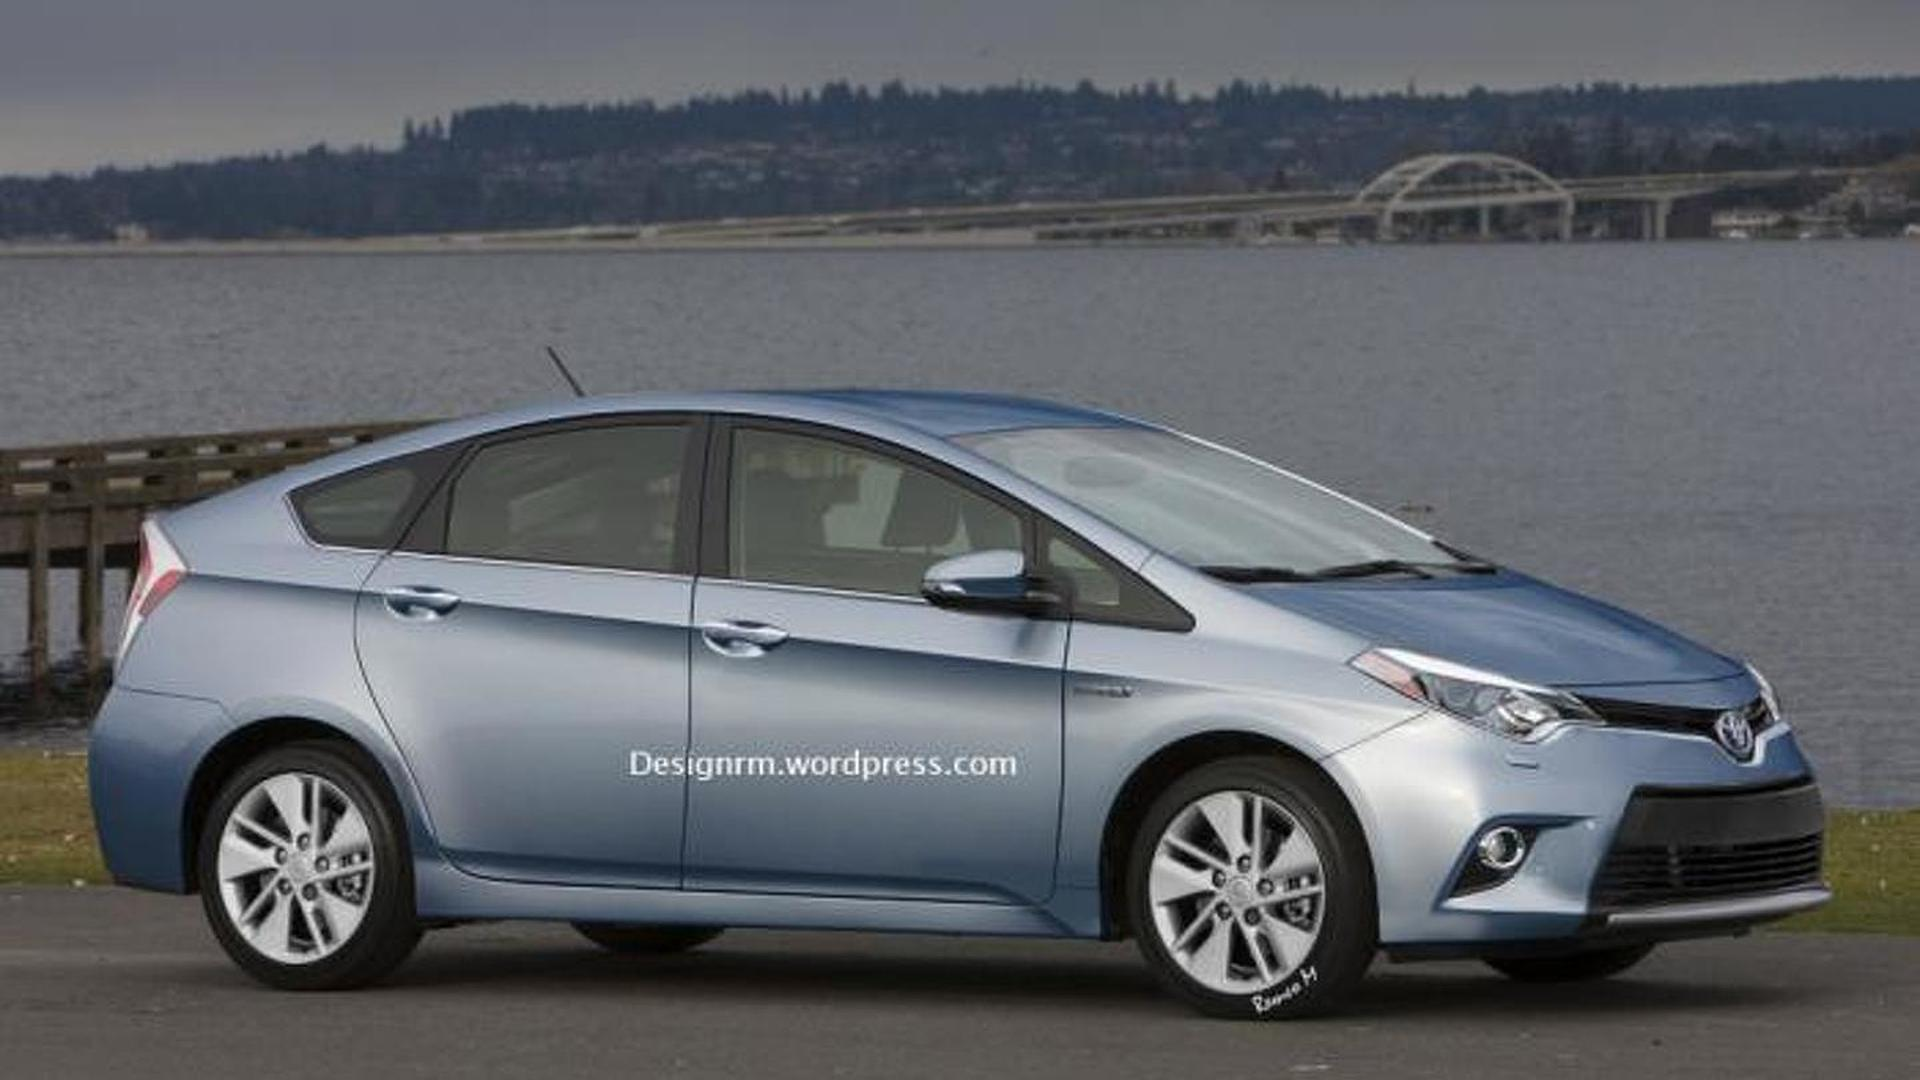 2015 Toyota Prius gets rendered